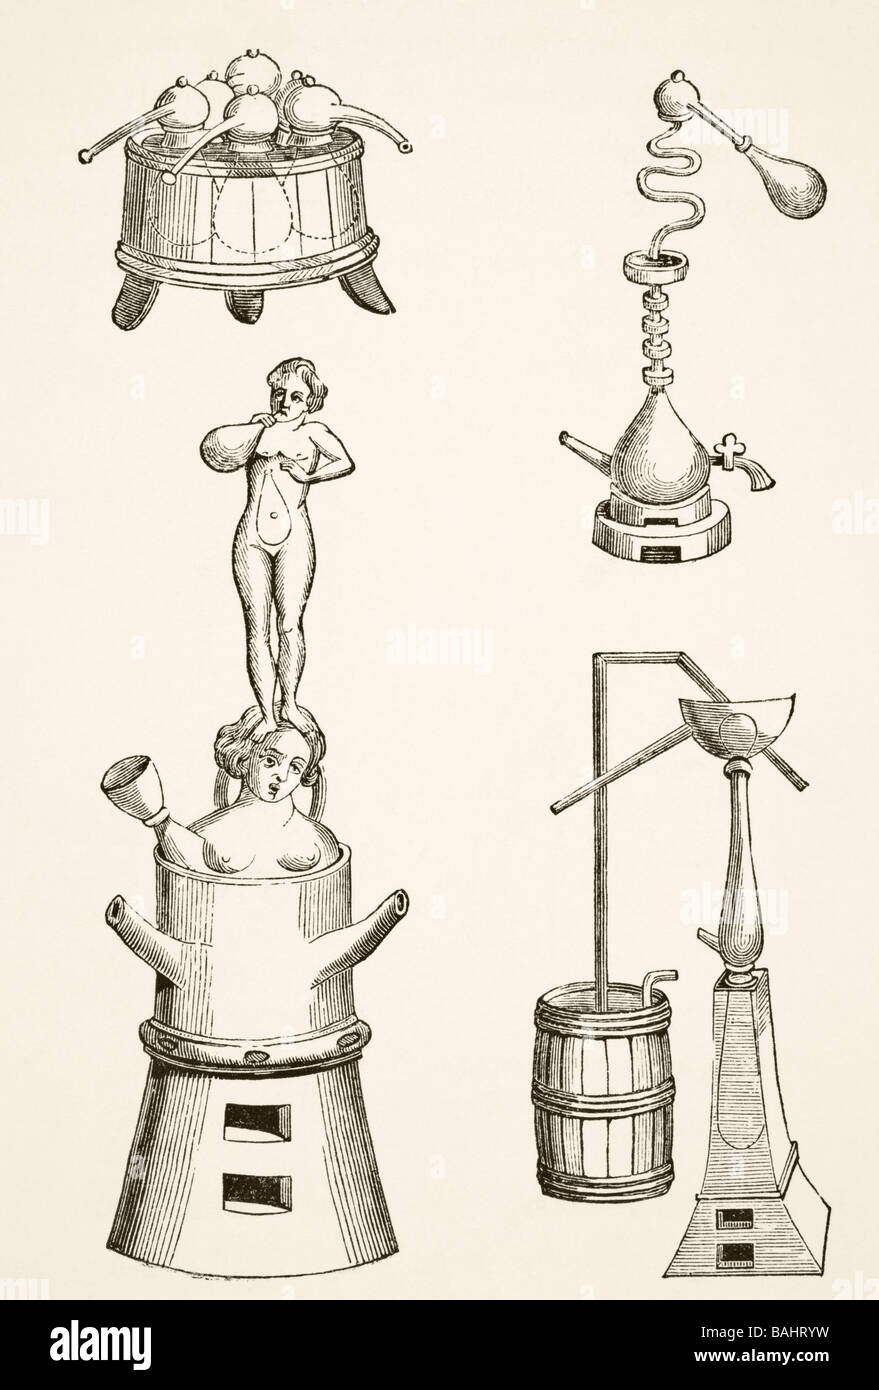 Furnace Retorts Stills And Distilling Apparatus Used By Chemists Distillation Diagram Alchemists In The 16th Century